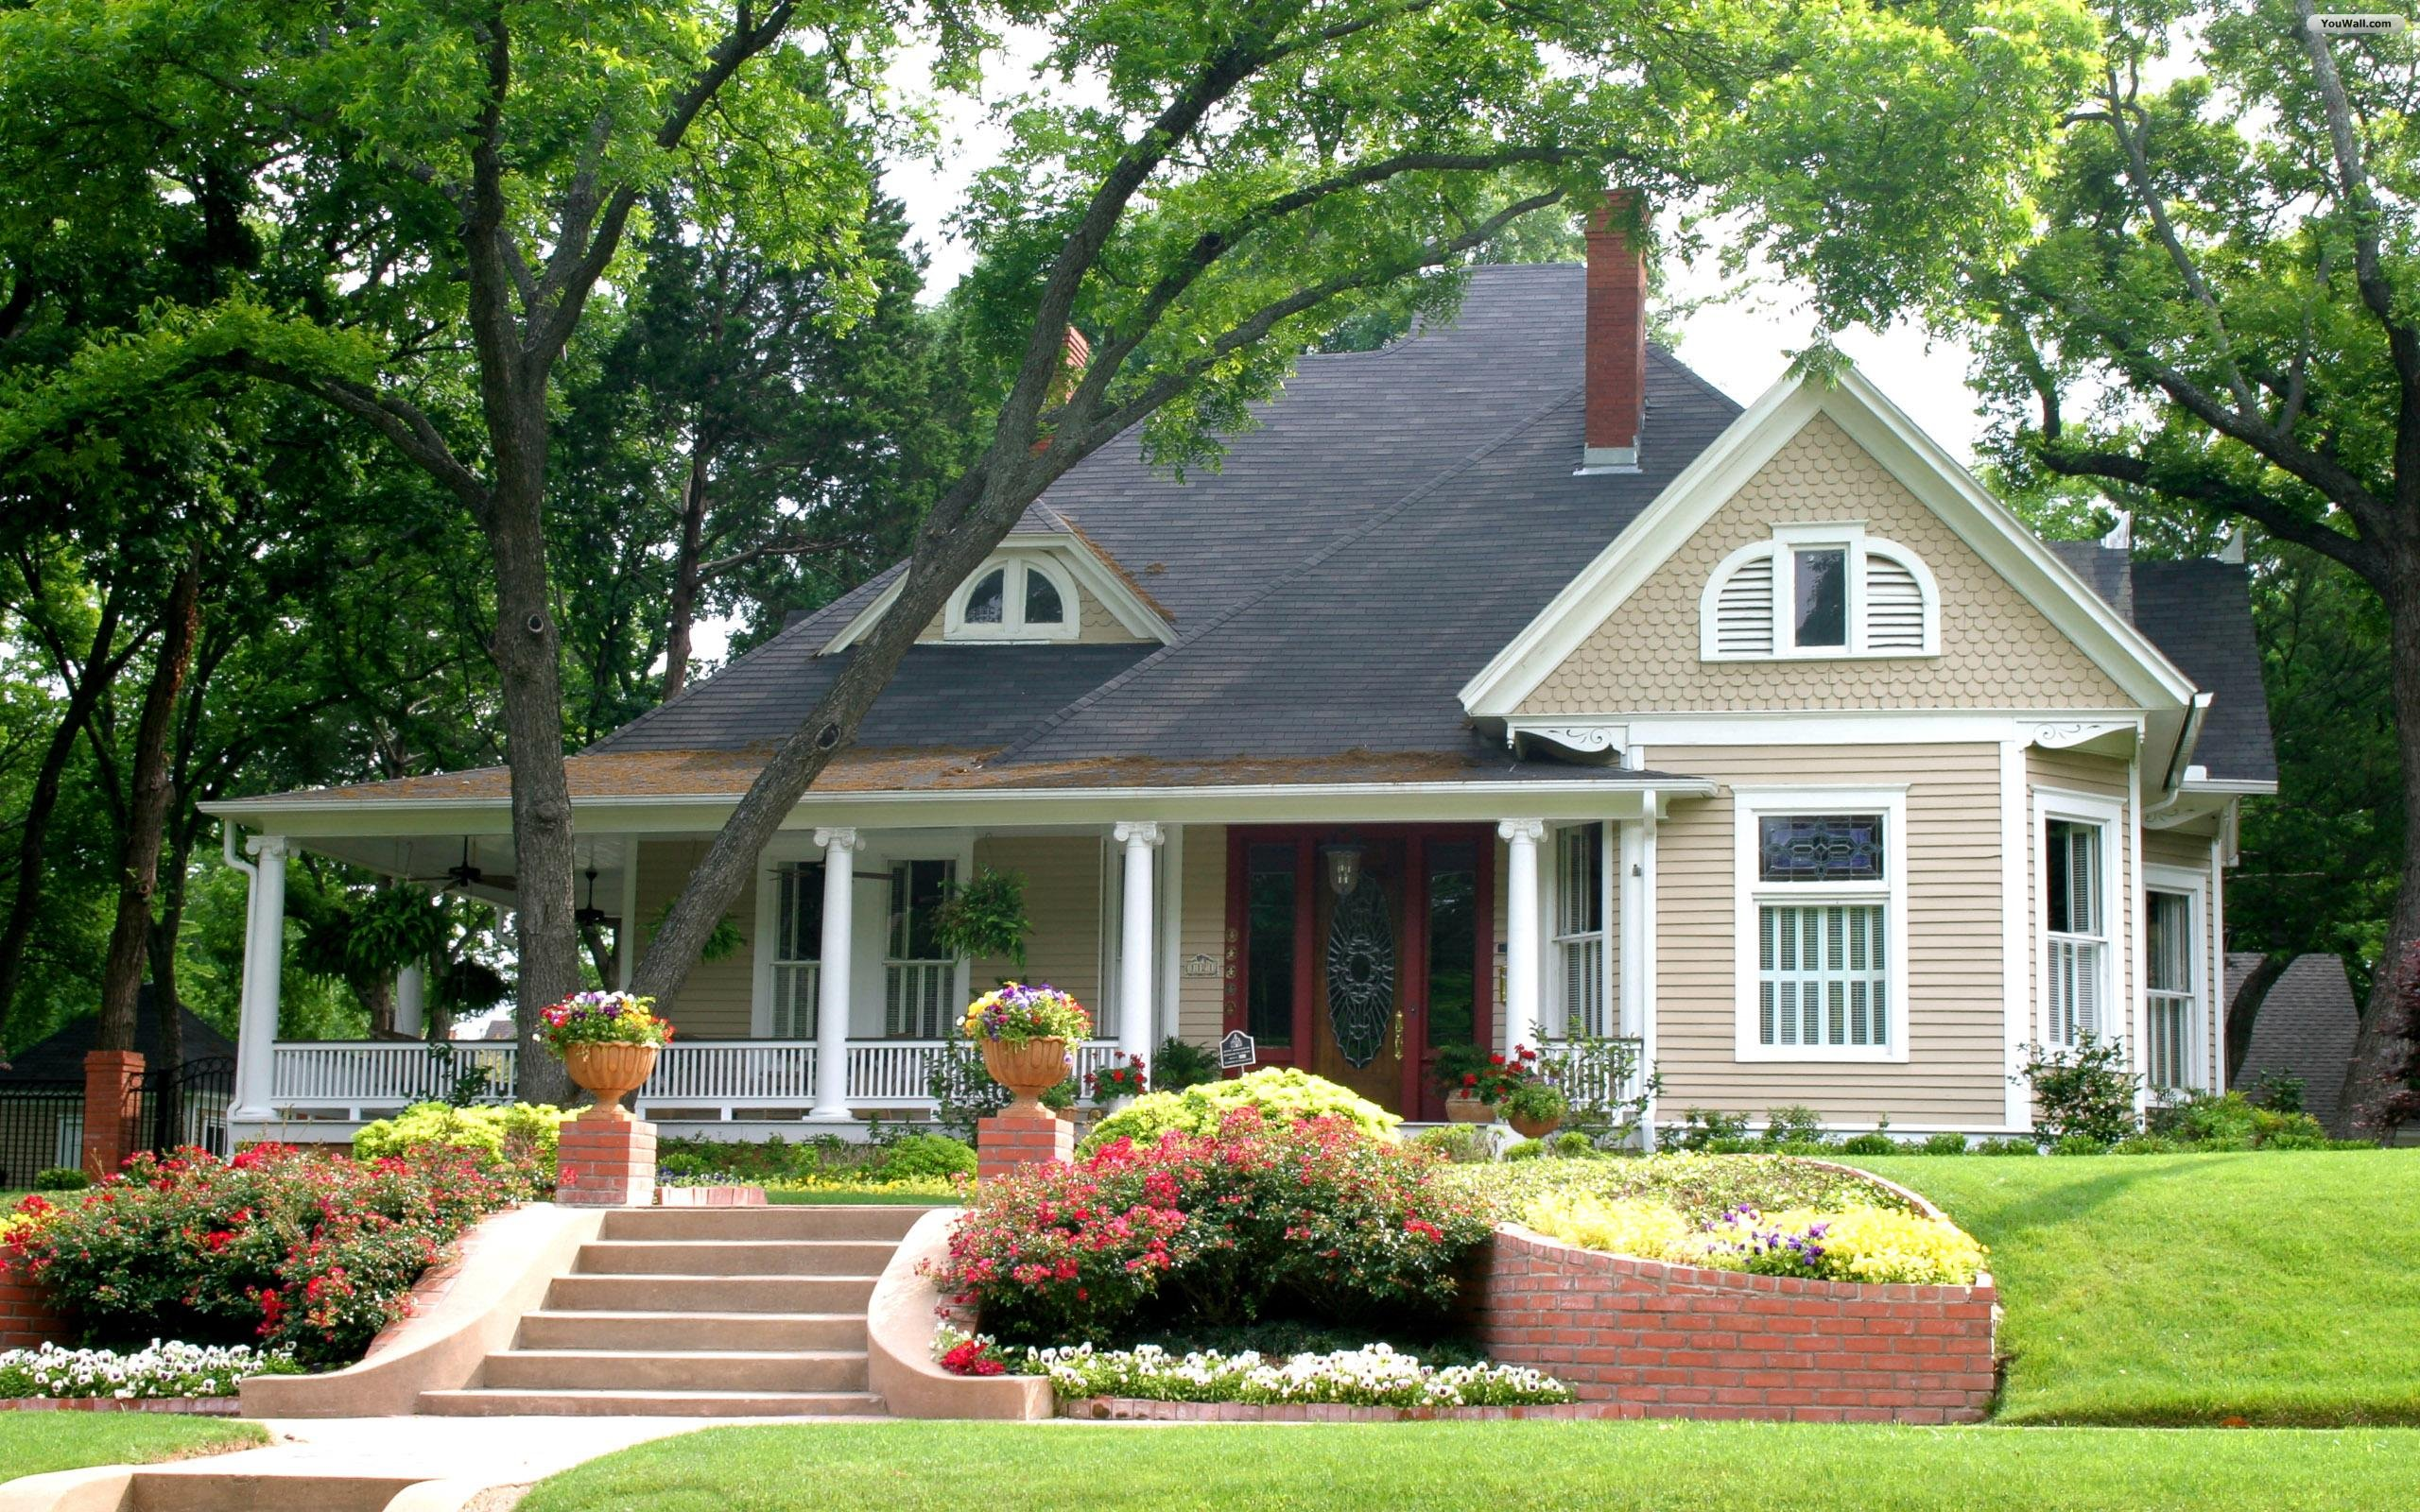 Superior Roofers In Connecticut   Valley Roofing U0026 Siding Is The Best Choice!